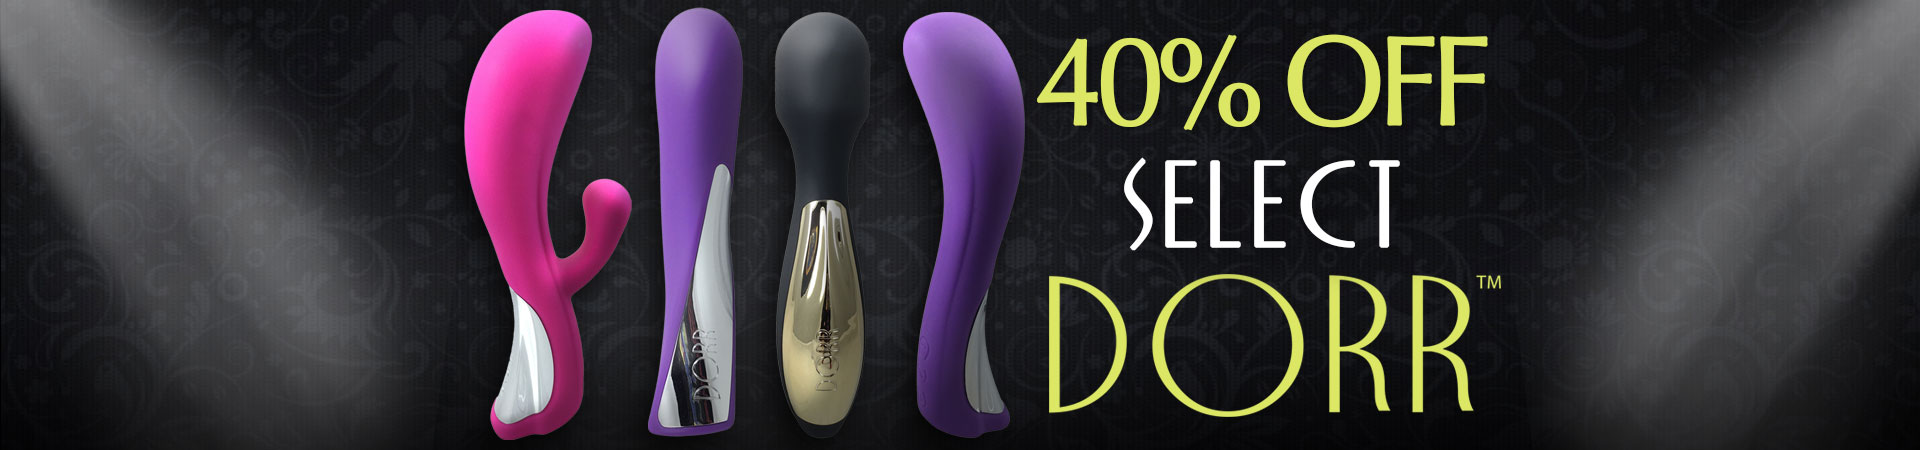 40% Off Select DORR - While Supplies Last